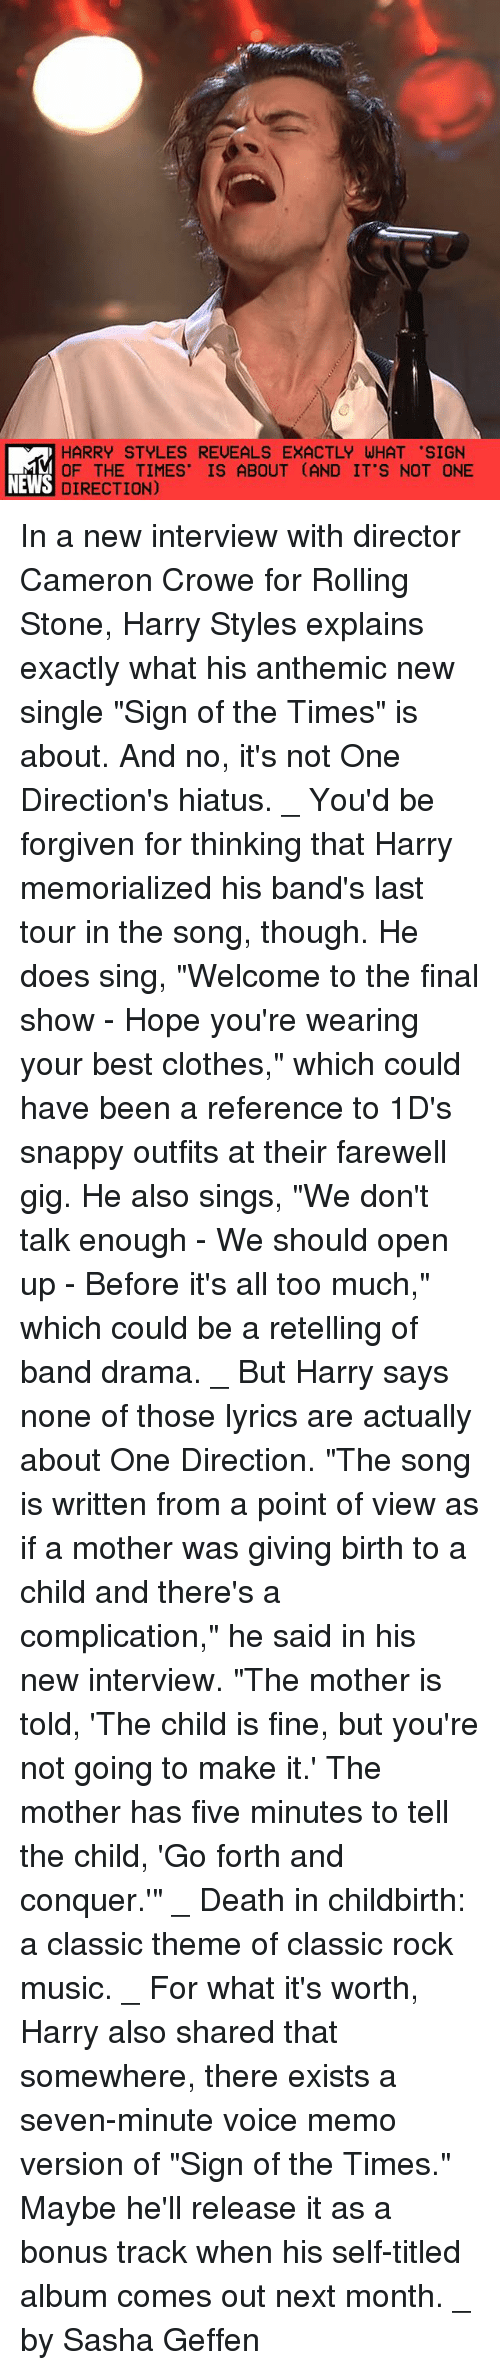 "Rolling Stone: HARRY STYLES REVEALS EXACTLY WHAT 'SIGN  OF THE TIMES' IS ABOUT (AND IT'S NOT ONE  NEWS DIRECTION) In a new interview with director Cameron Crowe for Rolling Stone, Harry Styles explains exactly what his anthemic new single ""Sign of the Times"" is about. And no, it's not One Direction's hiatus. _ You'd be forgiven for thinking that Harry memorialized his band's last tour in the song, though. He does sing, ""Welcome to the final show - Hope you're wearing your best clothes,"" which could have been a reference to 1D's snappy outfits at their farewell gig. He also sings, ""We don't talk enough - We should open up - Before it's all too much,"" which could be a retelling of band drama. _ But Harry says none of those lyrics are actually about One Direction. ""The song is written from a point of view as if a mother was giving birth to a child and there's a complication,"" he said in his new interview. ""The mother is told, 'The child is fine, but you're not going to make it.' The mother has five minutes to tell the child, 'Go forth and conquer.'"" _ Death in childbirth: a classic theme of classic rock music. _ For what it's worth, Harry also shared that somewhere, there exists a seven-minute voice memo version of ""Sign of the Times."" Maybe he'll release it as a bonus track when his self-titled album comes out next month. _ by Sasha Geffen"